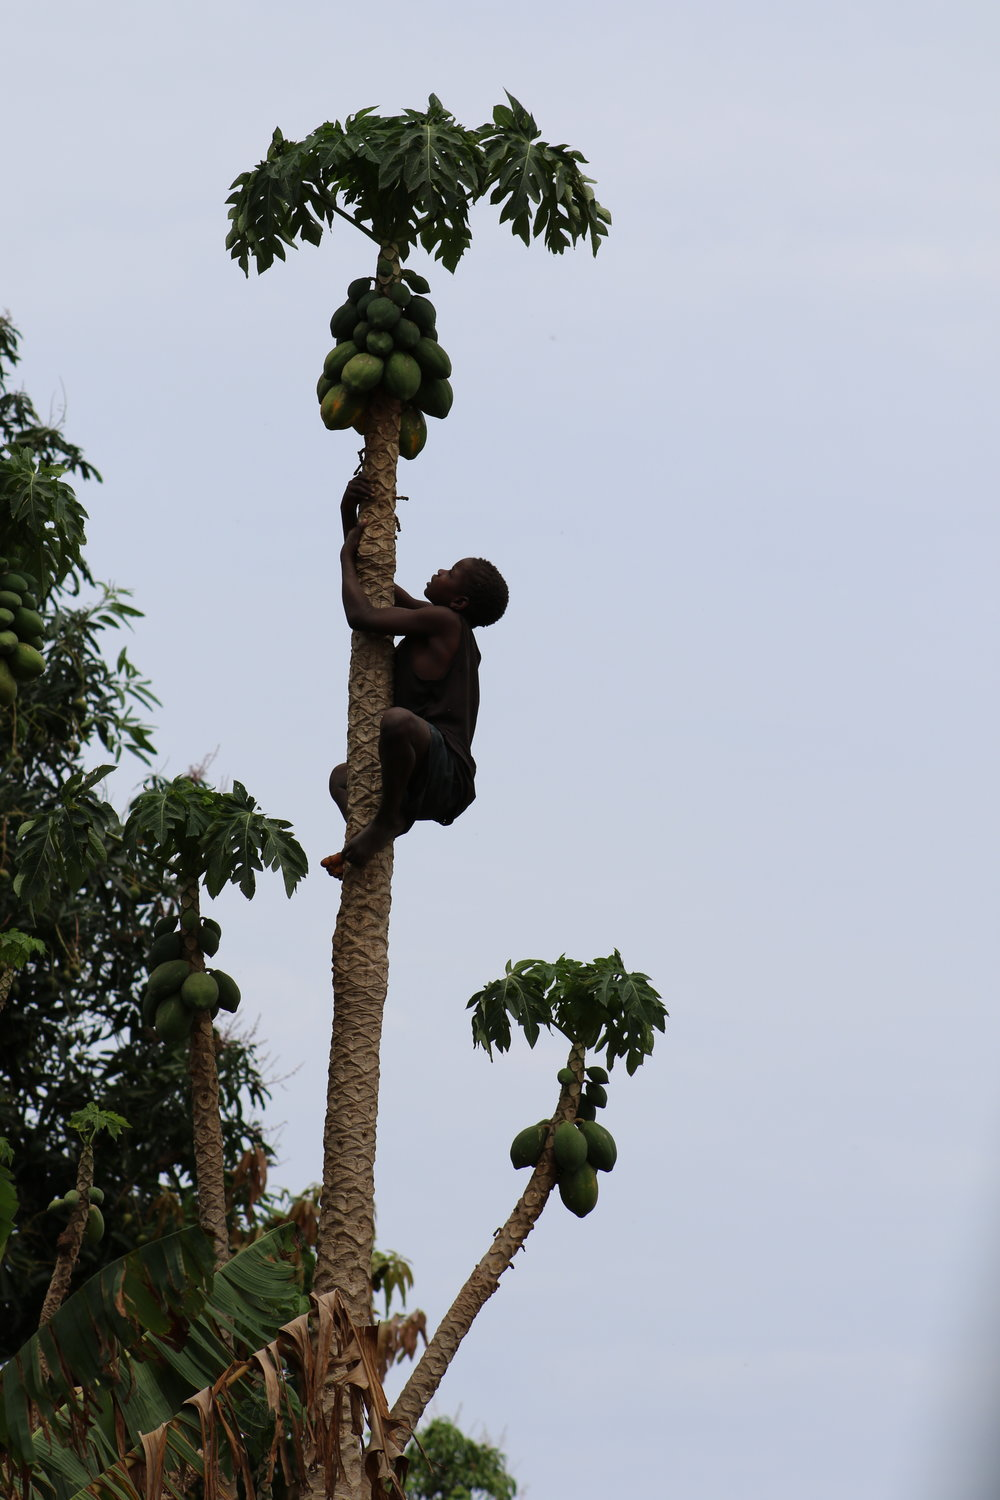 In one village, the team and I watched mesmerized as this child climbed a papaya tree with no supporting branches or ropes. When he got to the top, he got his papaya and we got a happy thumbs-up from this skilled climber.